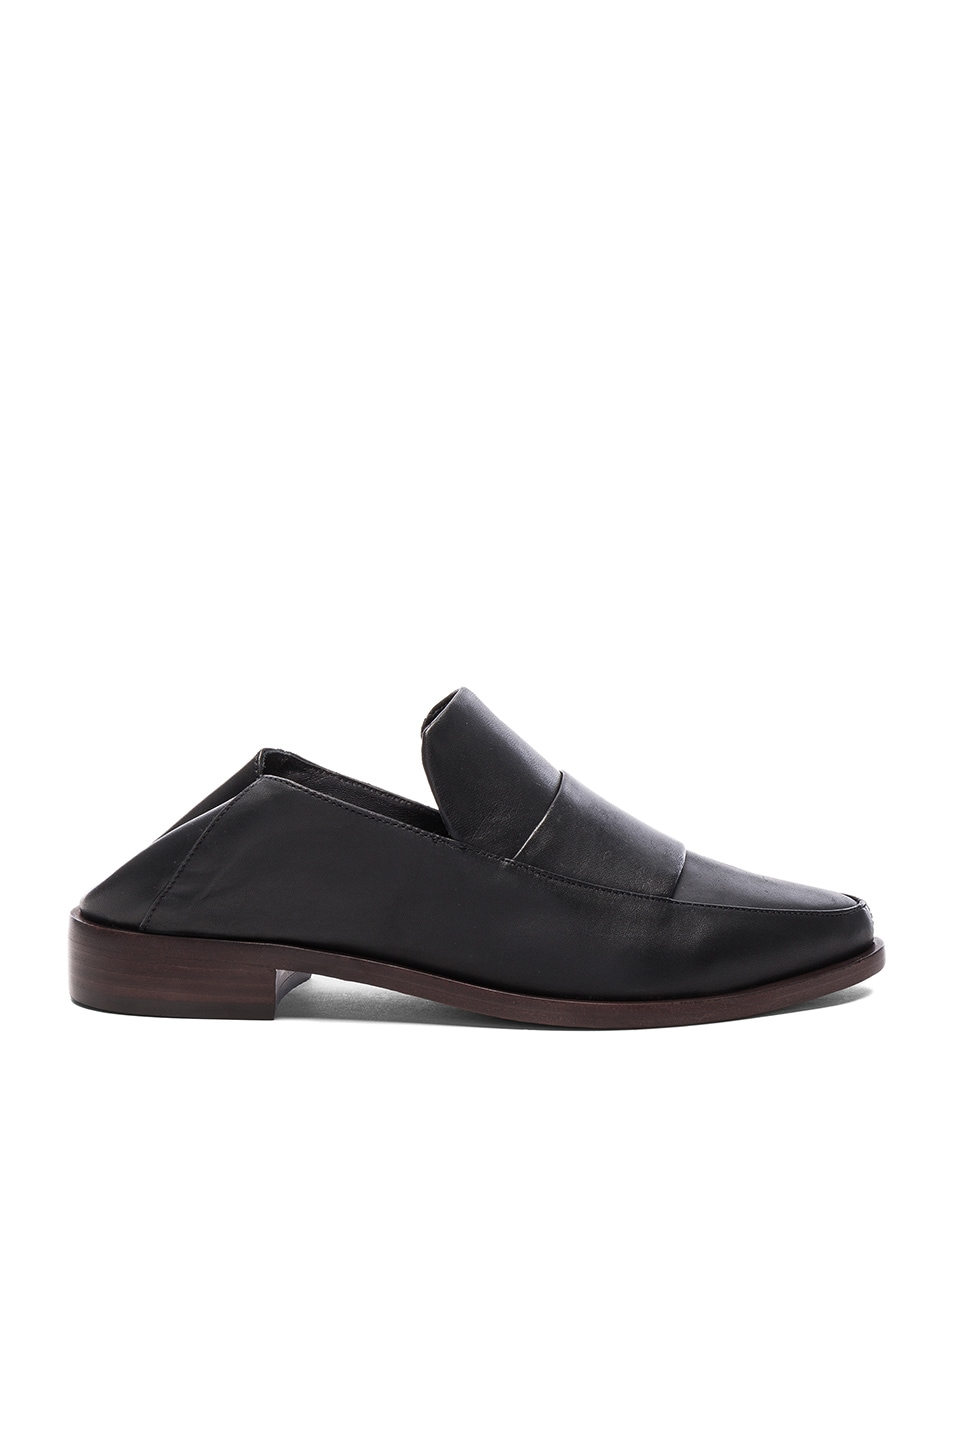 Image 1 of Tibi Leather Darla Loafers in Black